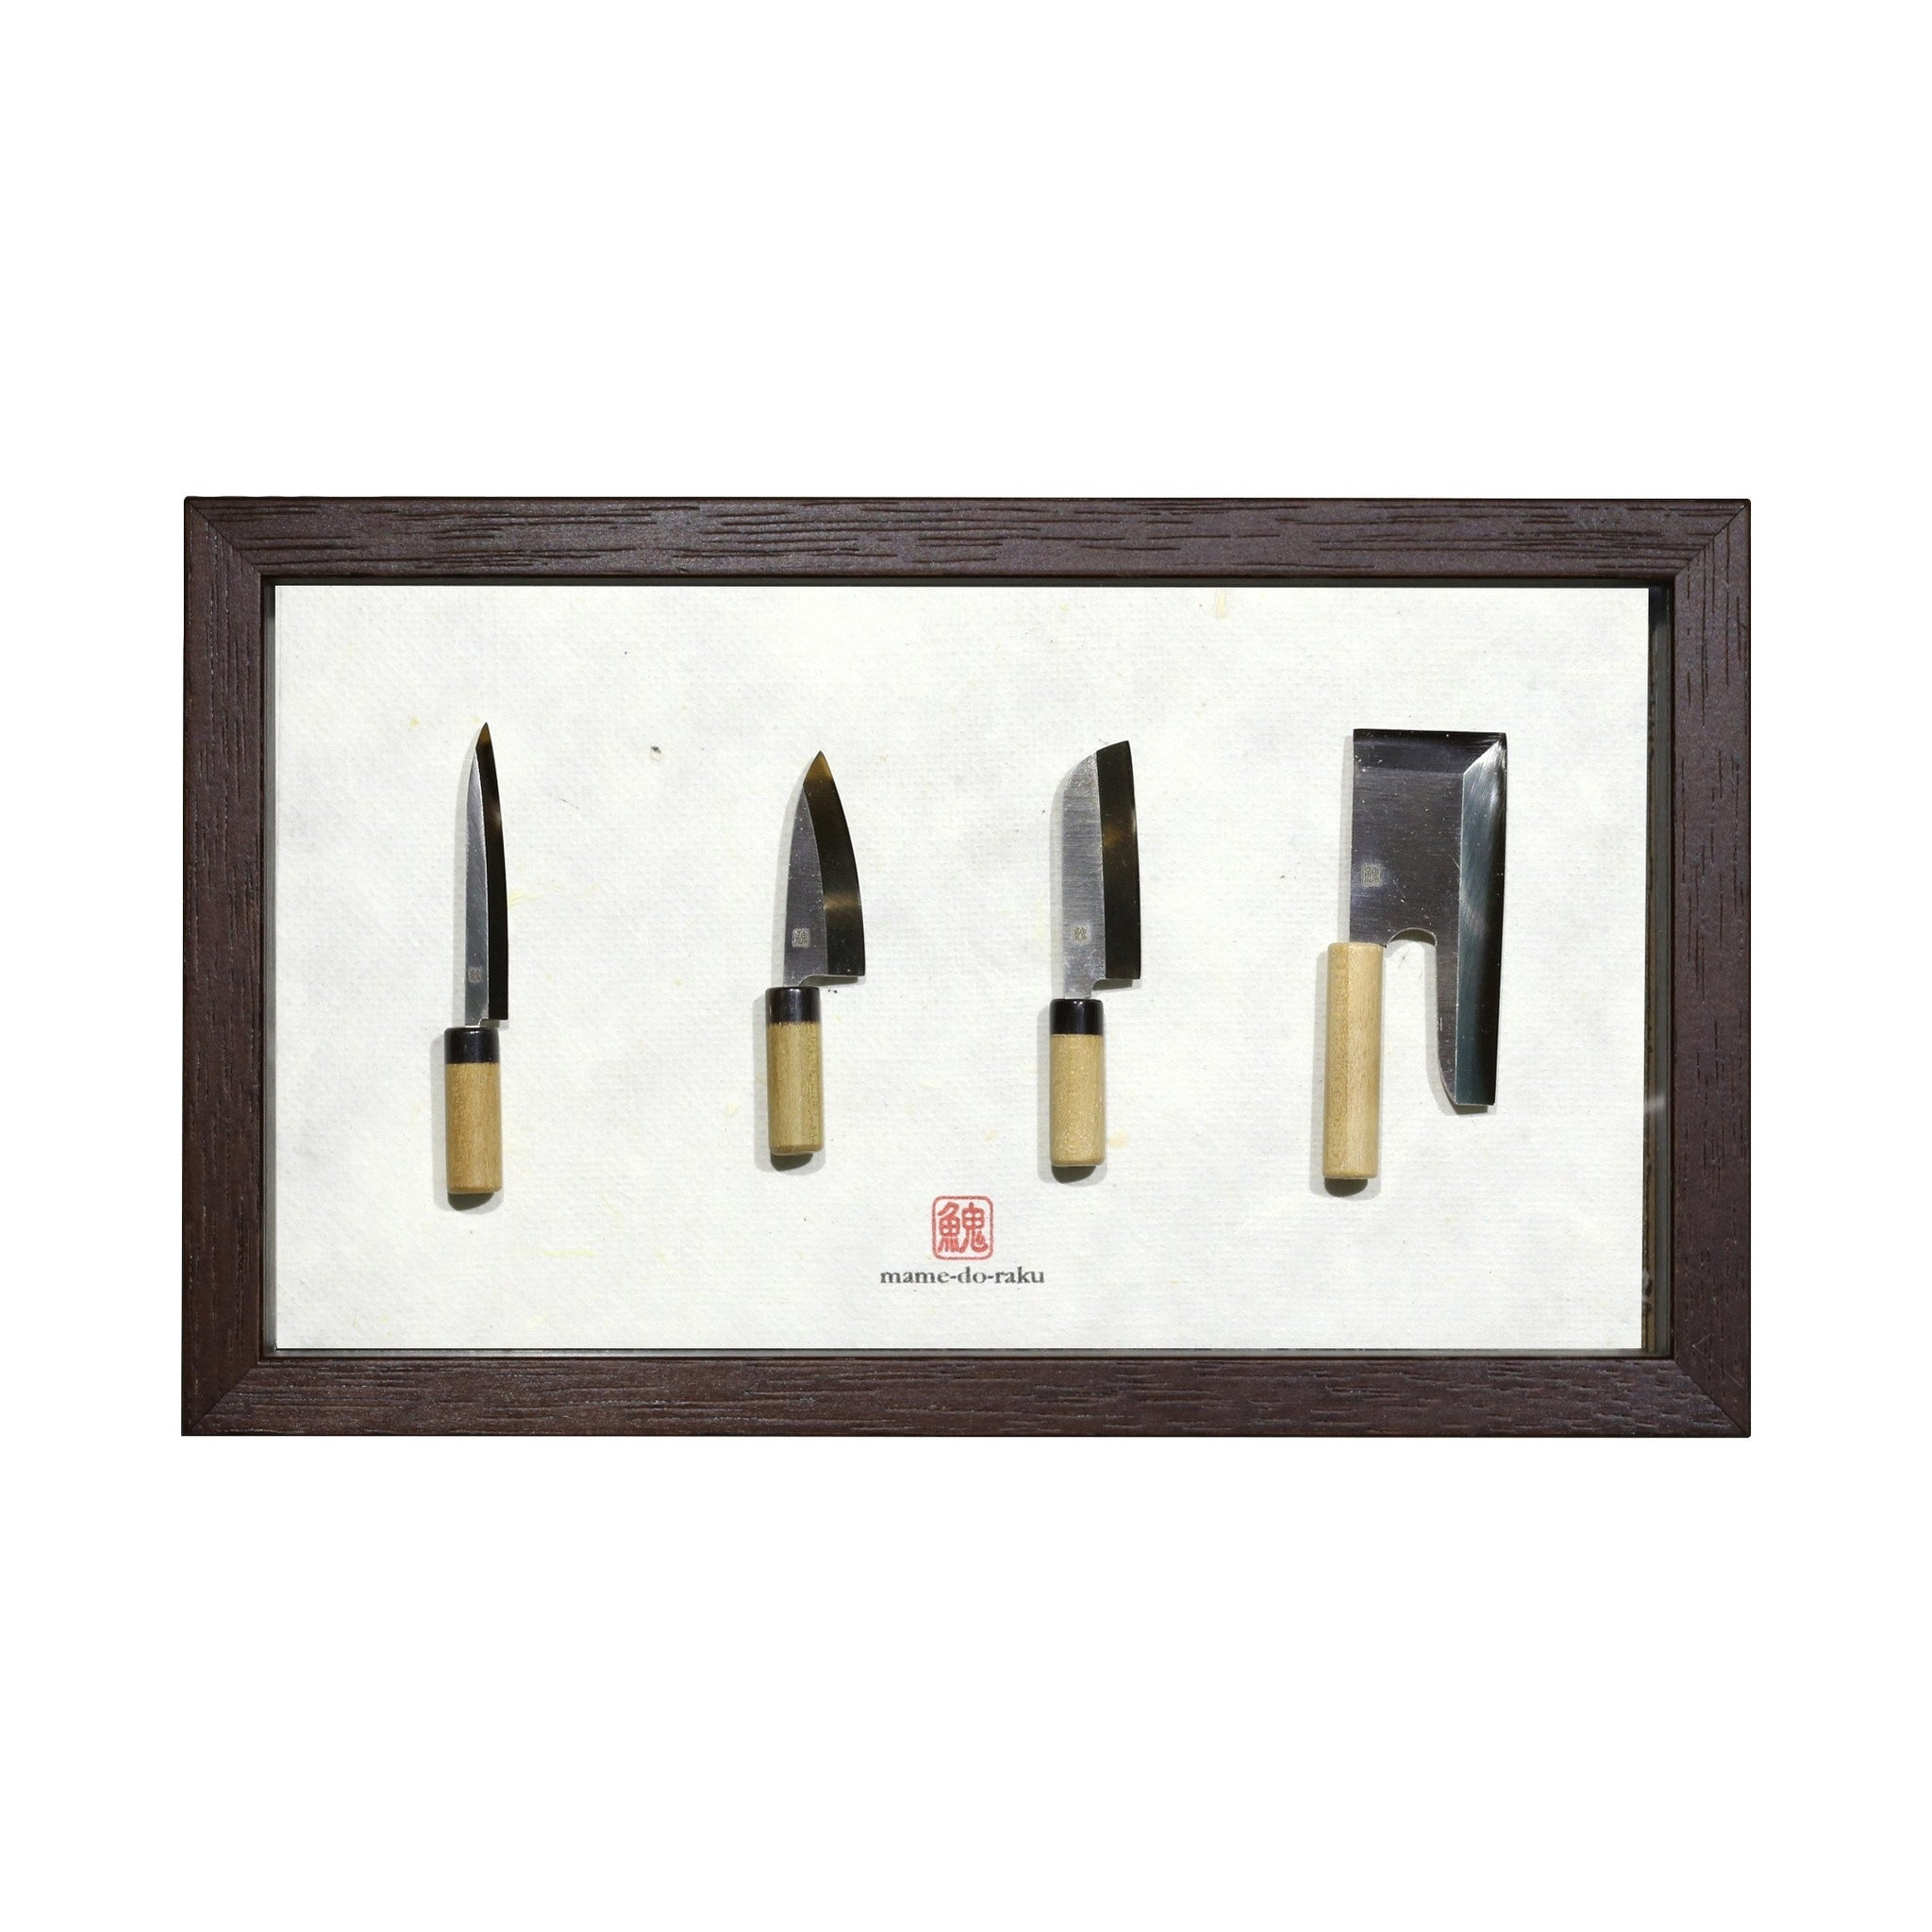 Miniature Kitchen Knives Set - 4 pcs | Japanese Tools Australia